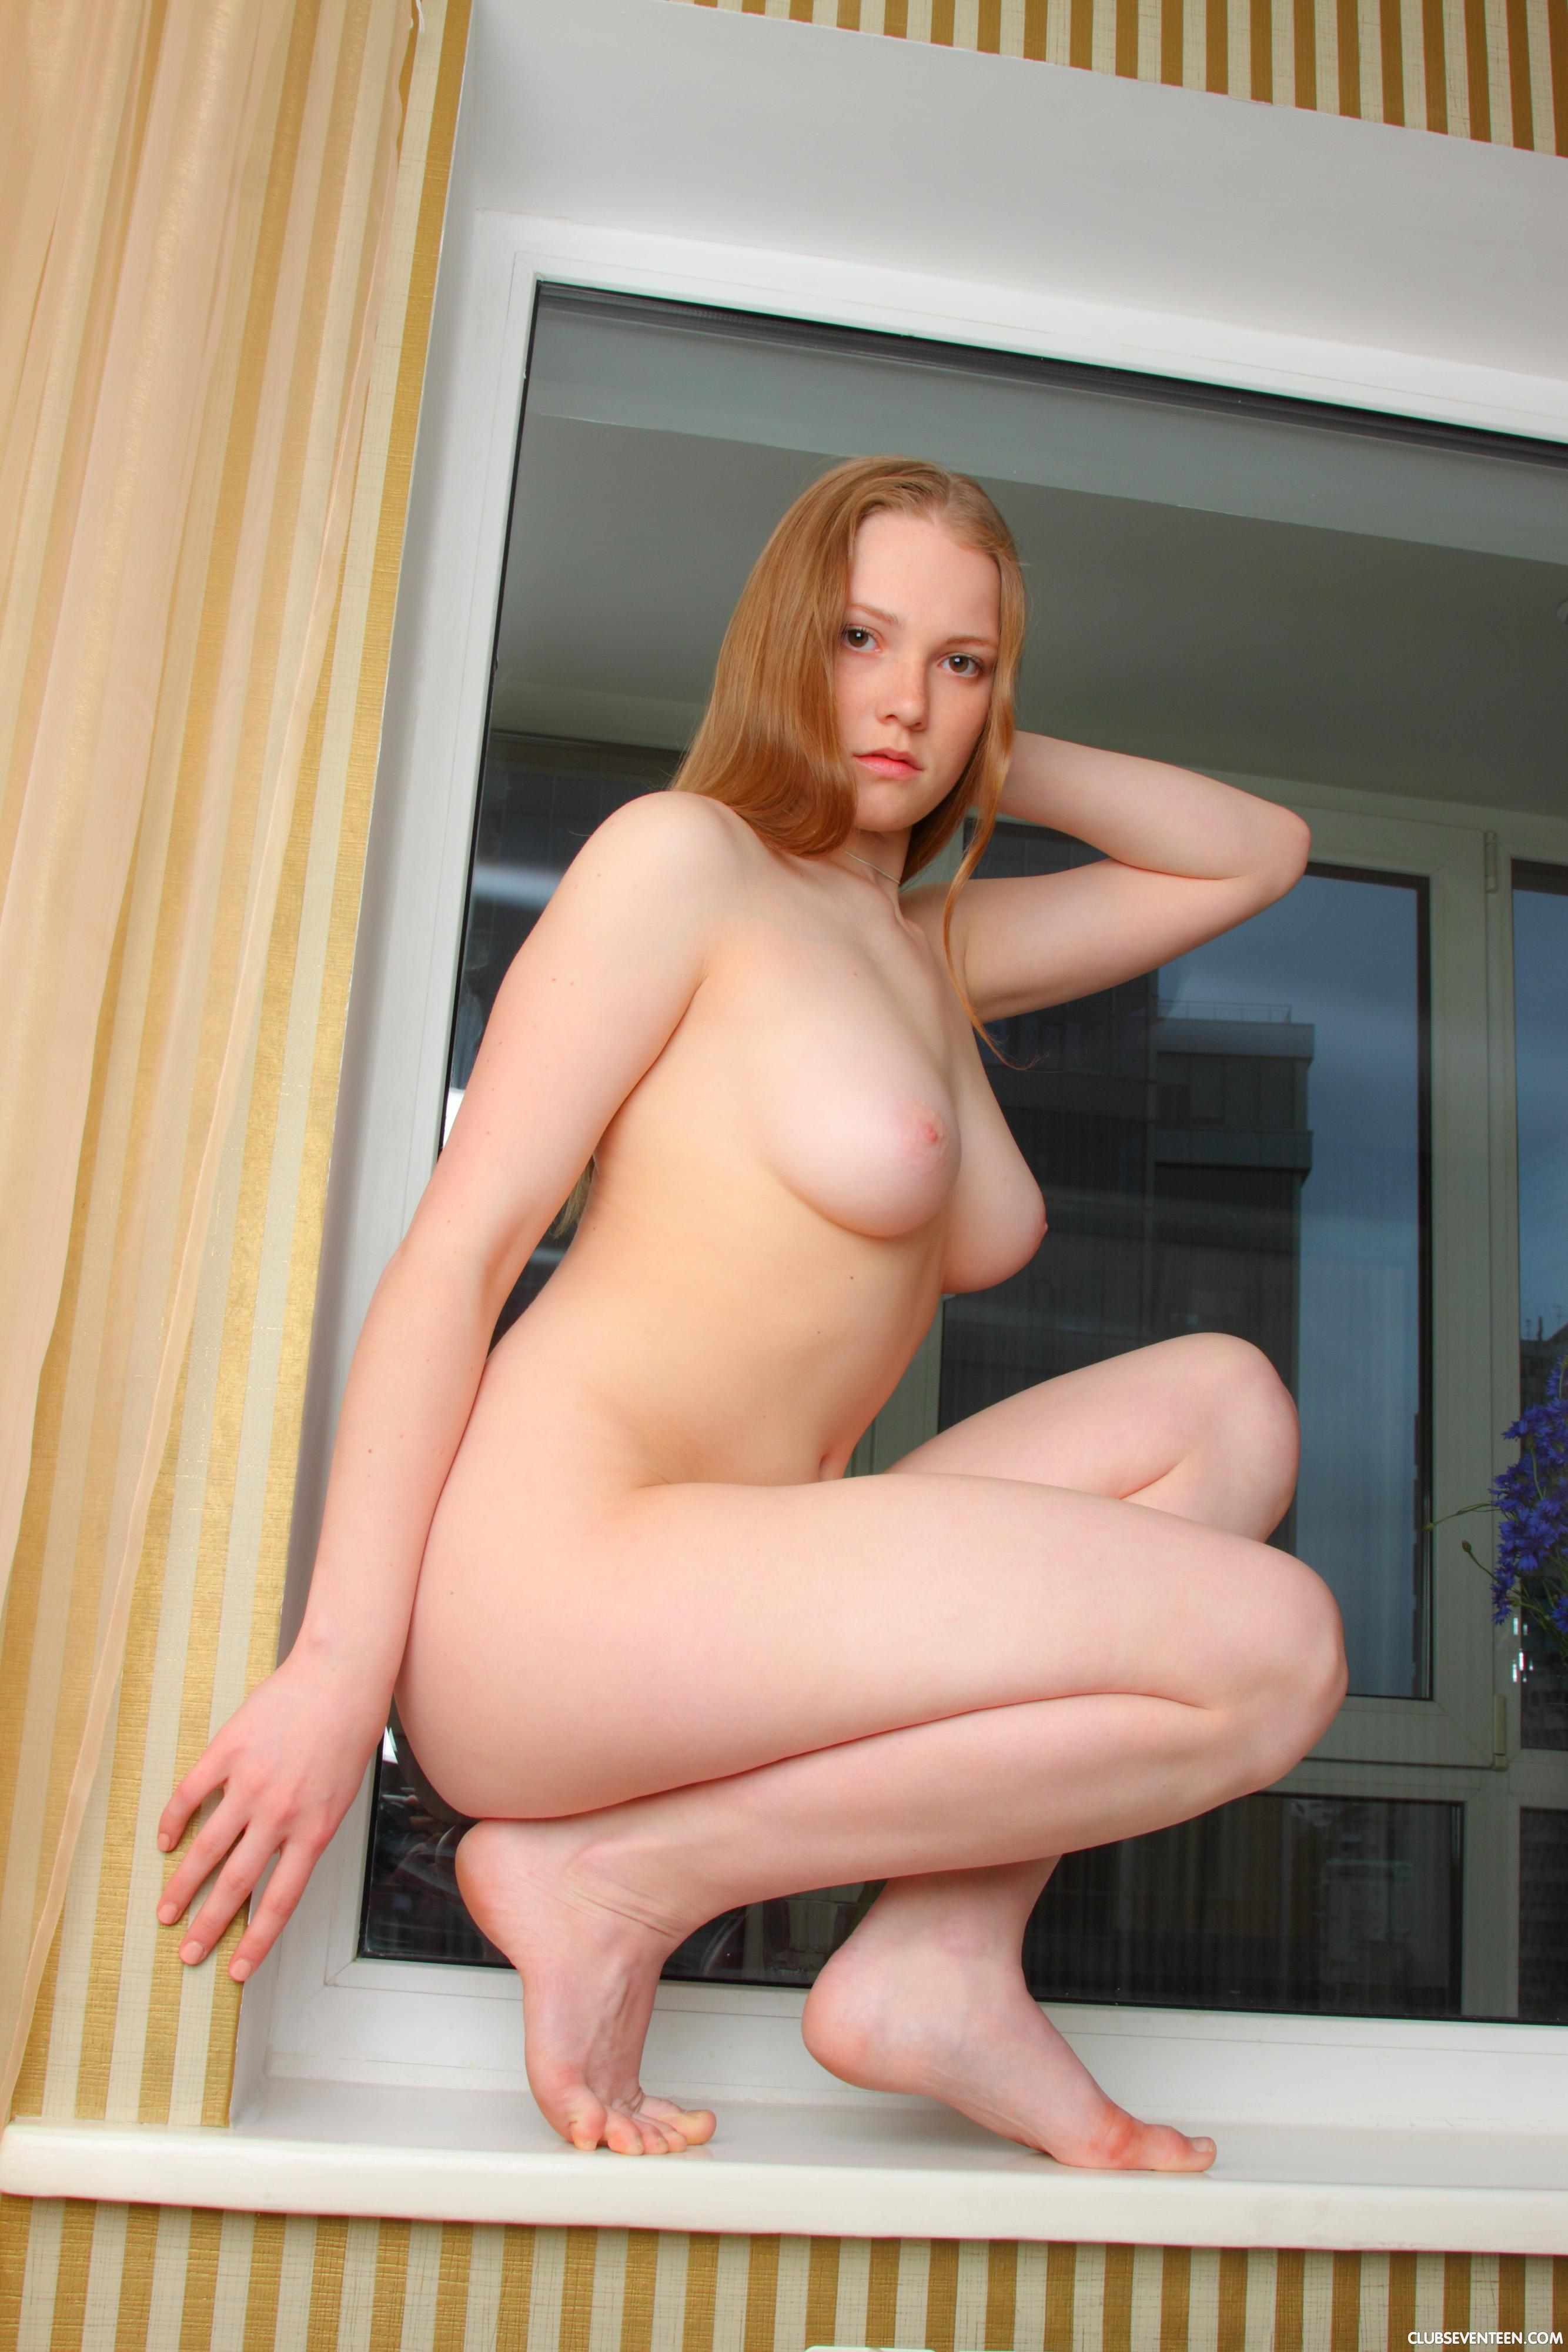 Young Busty Teens Nude